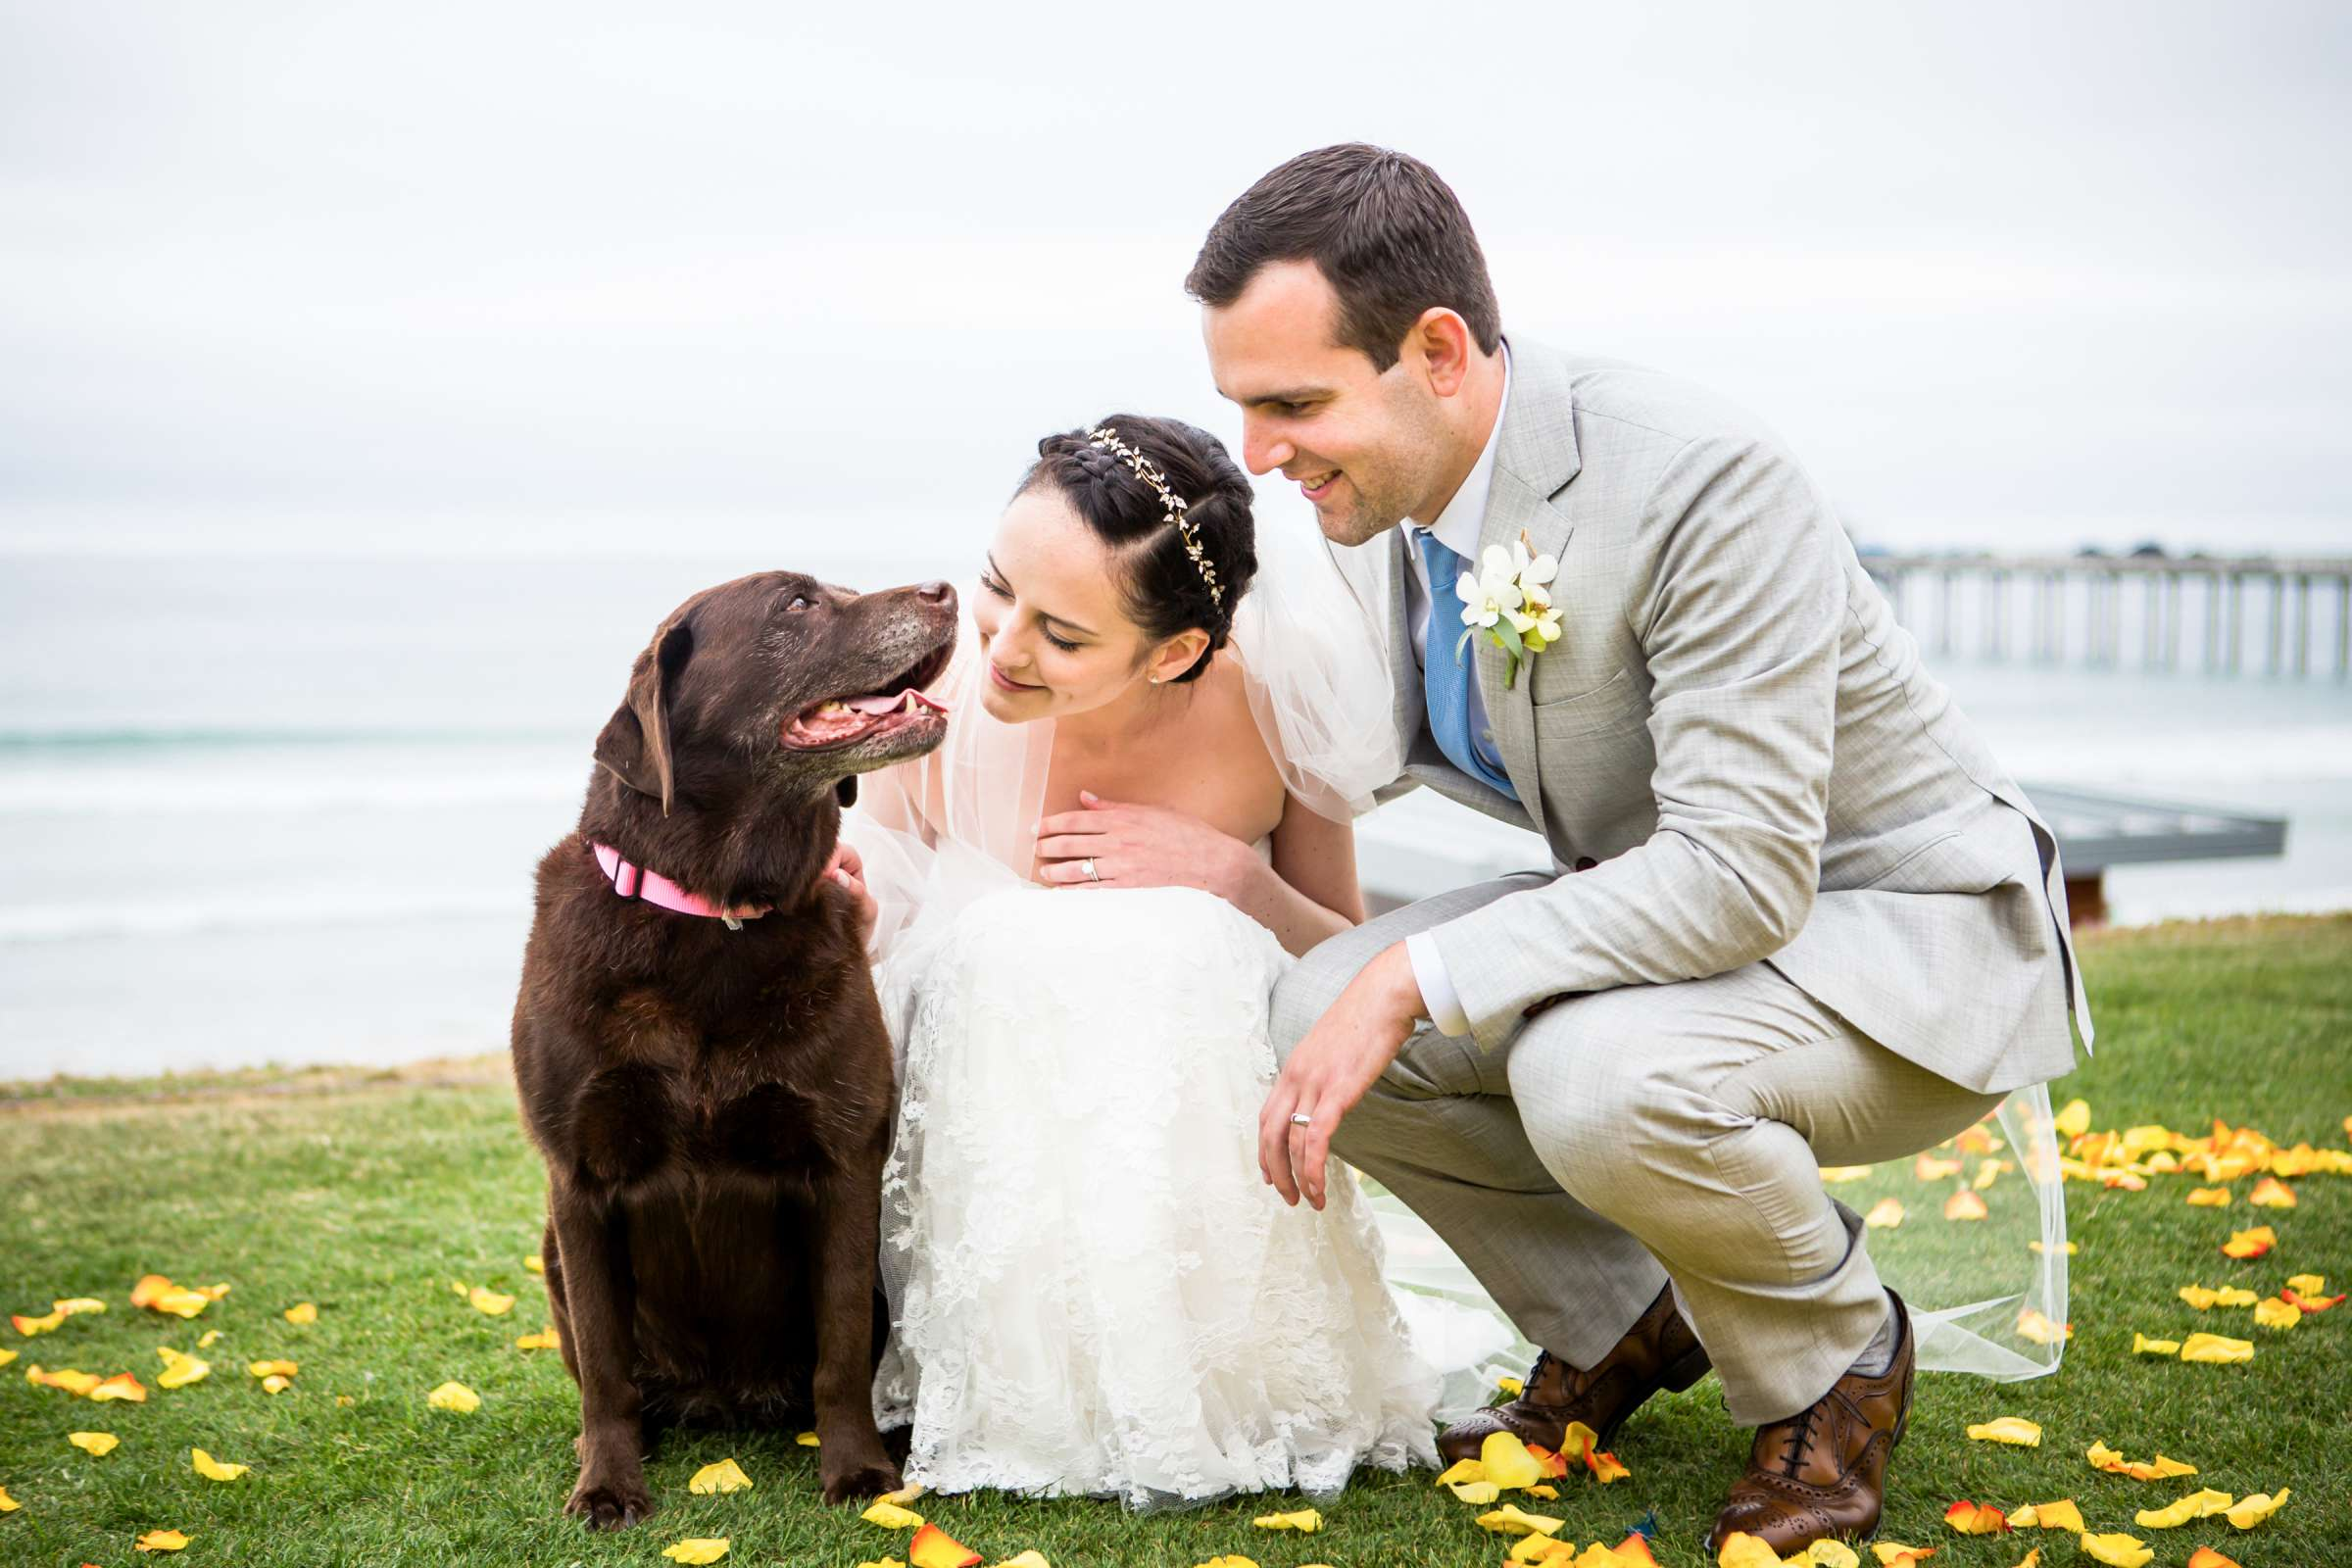 Scripps Seaside Forum Wedding coordinated by Francine Ribeau Events, Shaina and Christopher Wedding Photo #1 by True Photography